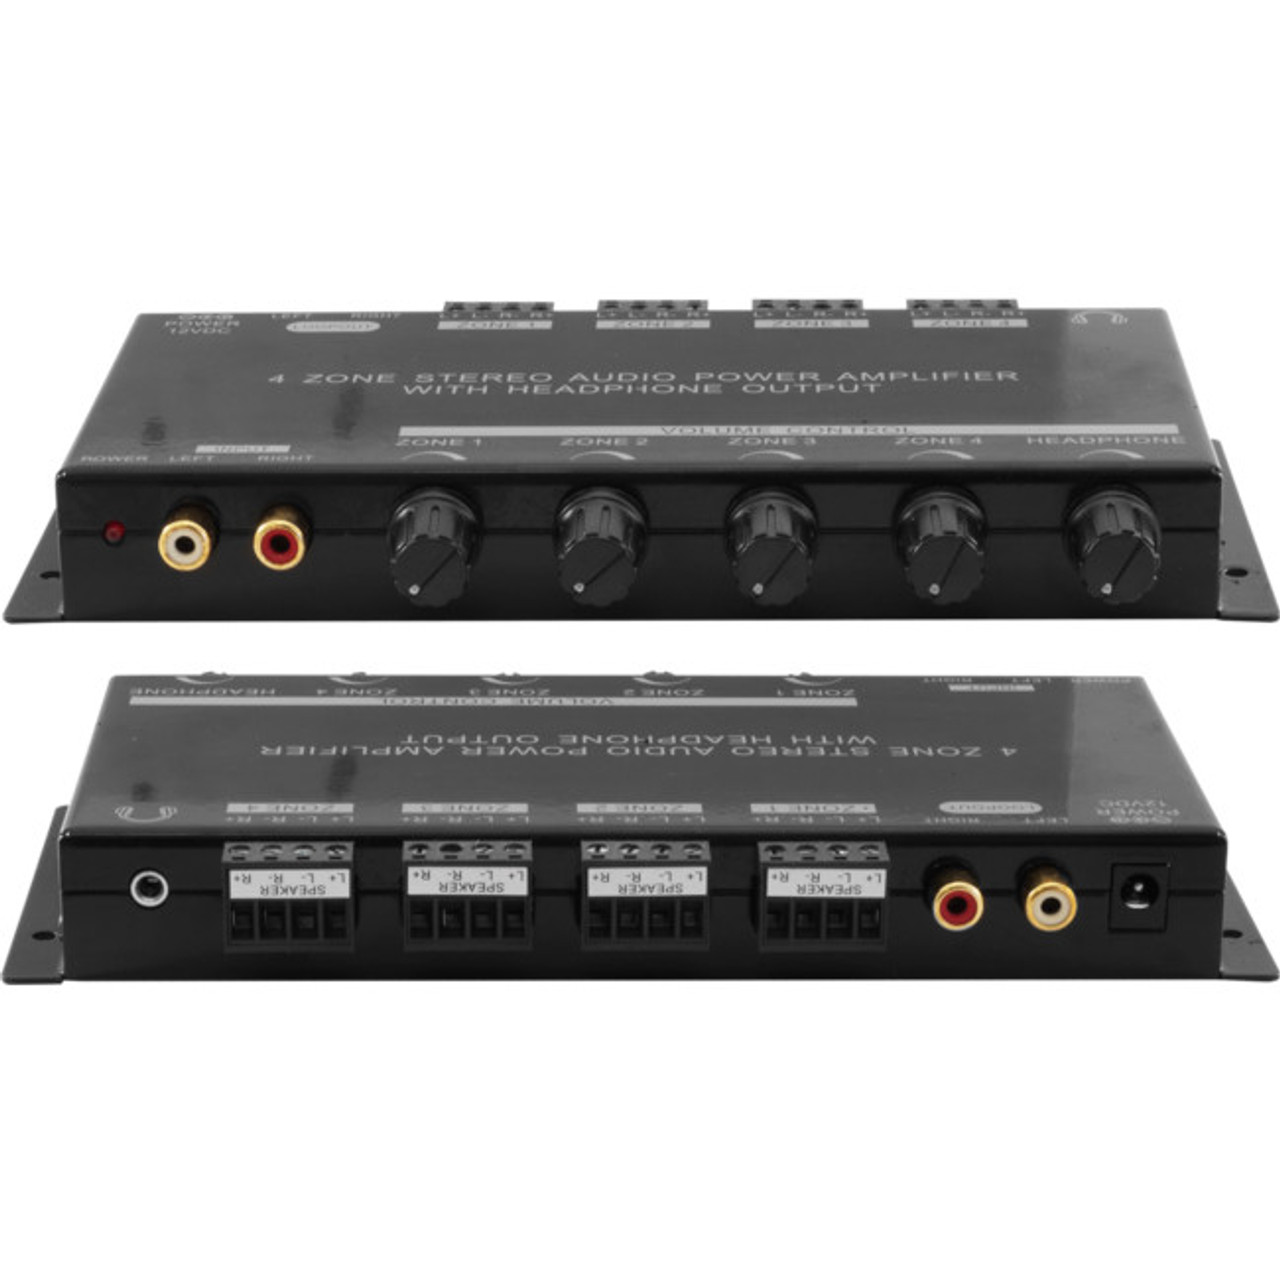 Pro2 PRO1300 Four Zone Stereo Power Amplifier